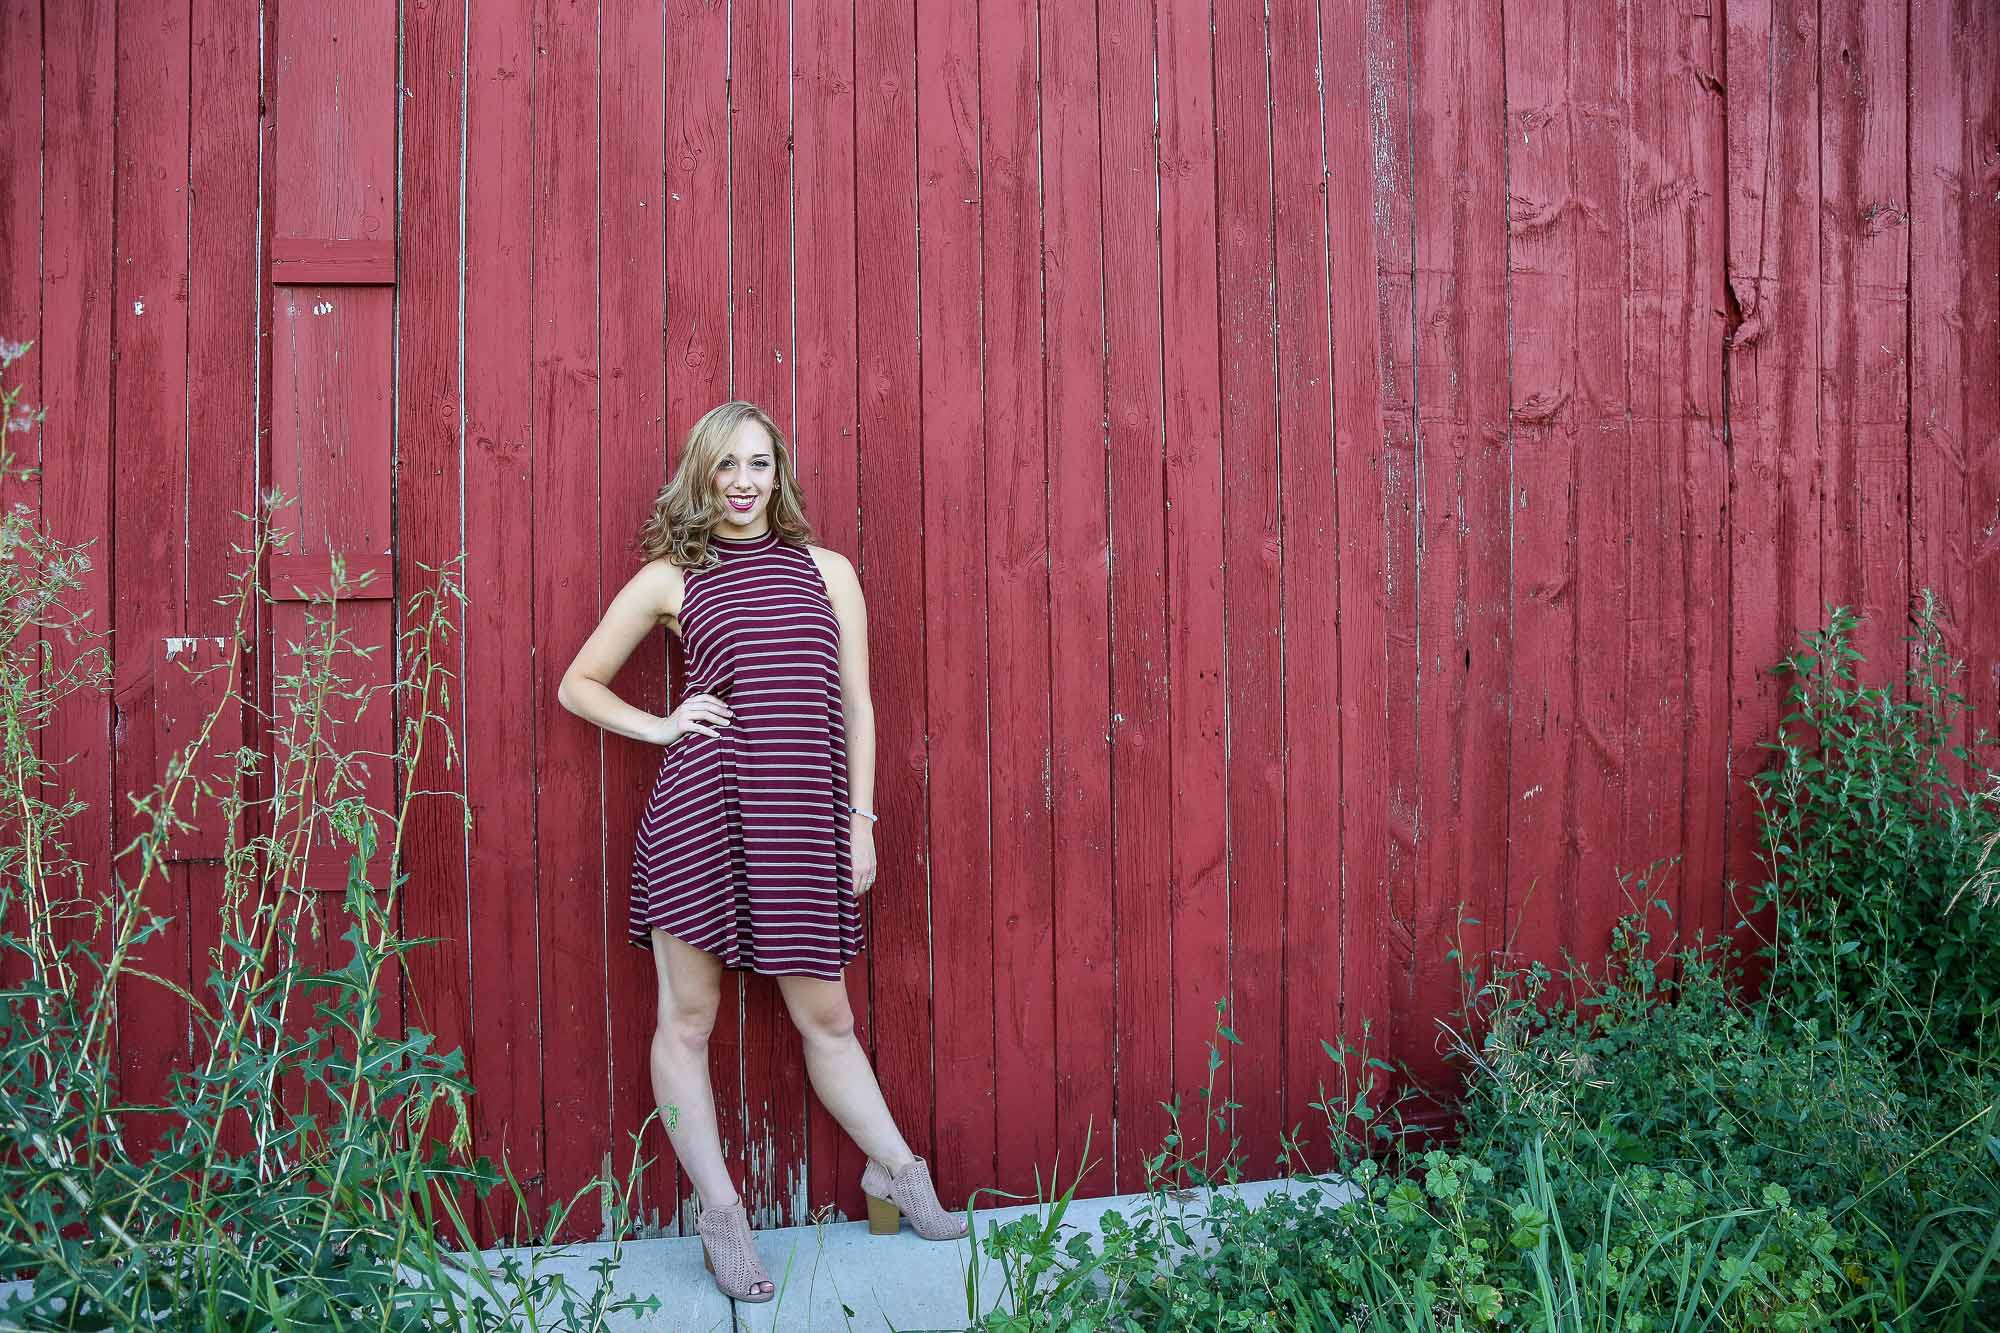 Natalie Stockel's senior photography session at the Red Barn, located in Grand Rapids, Michigan.